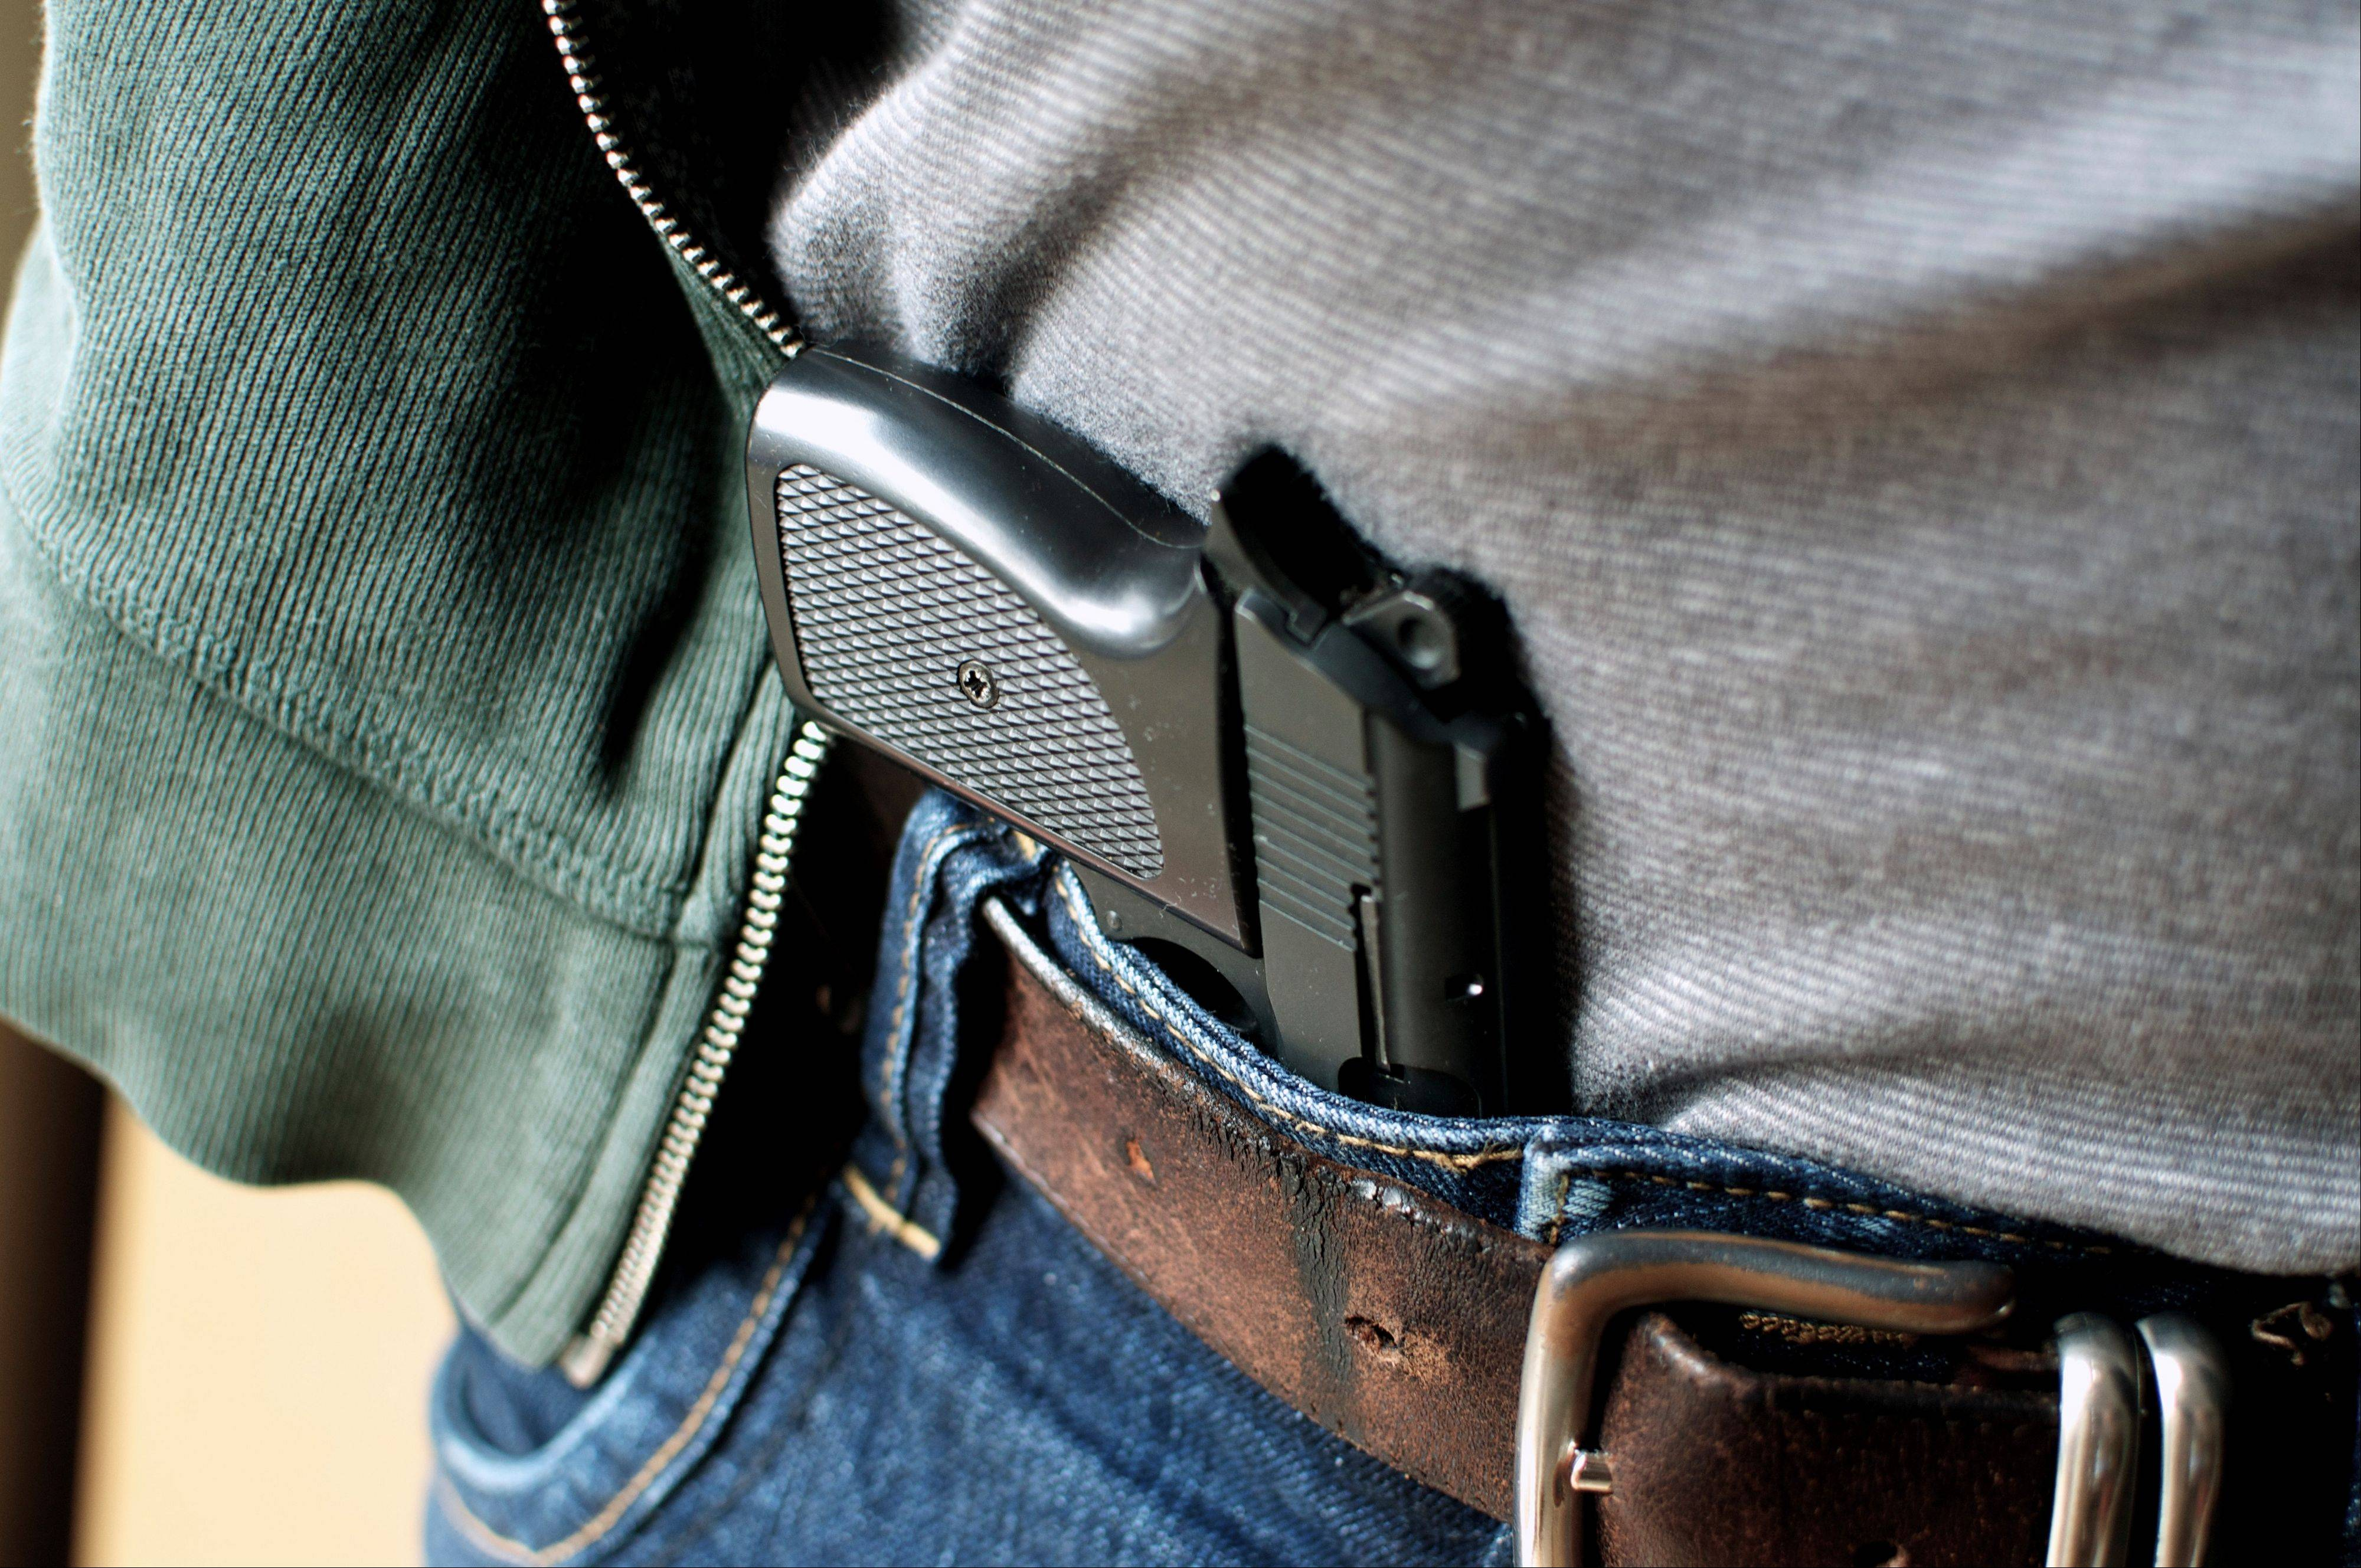 Concealed carry permits could come out in March